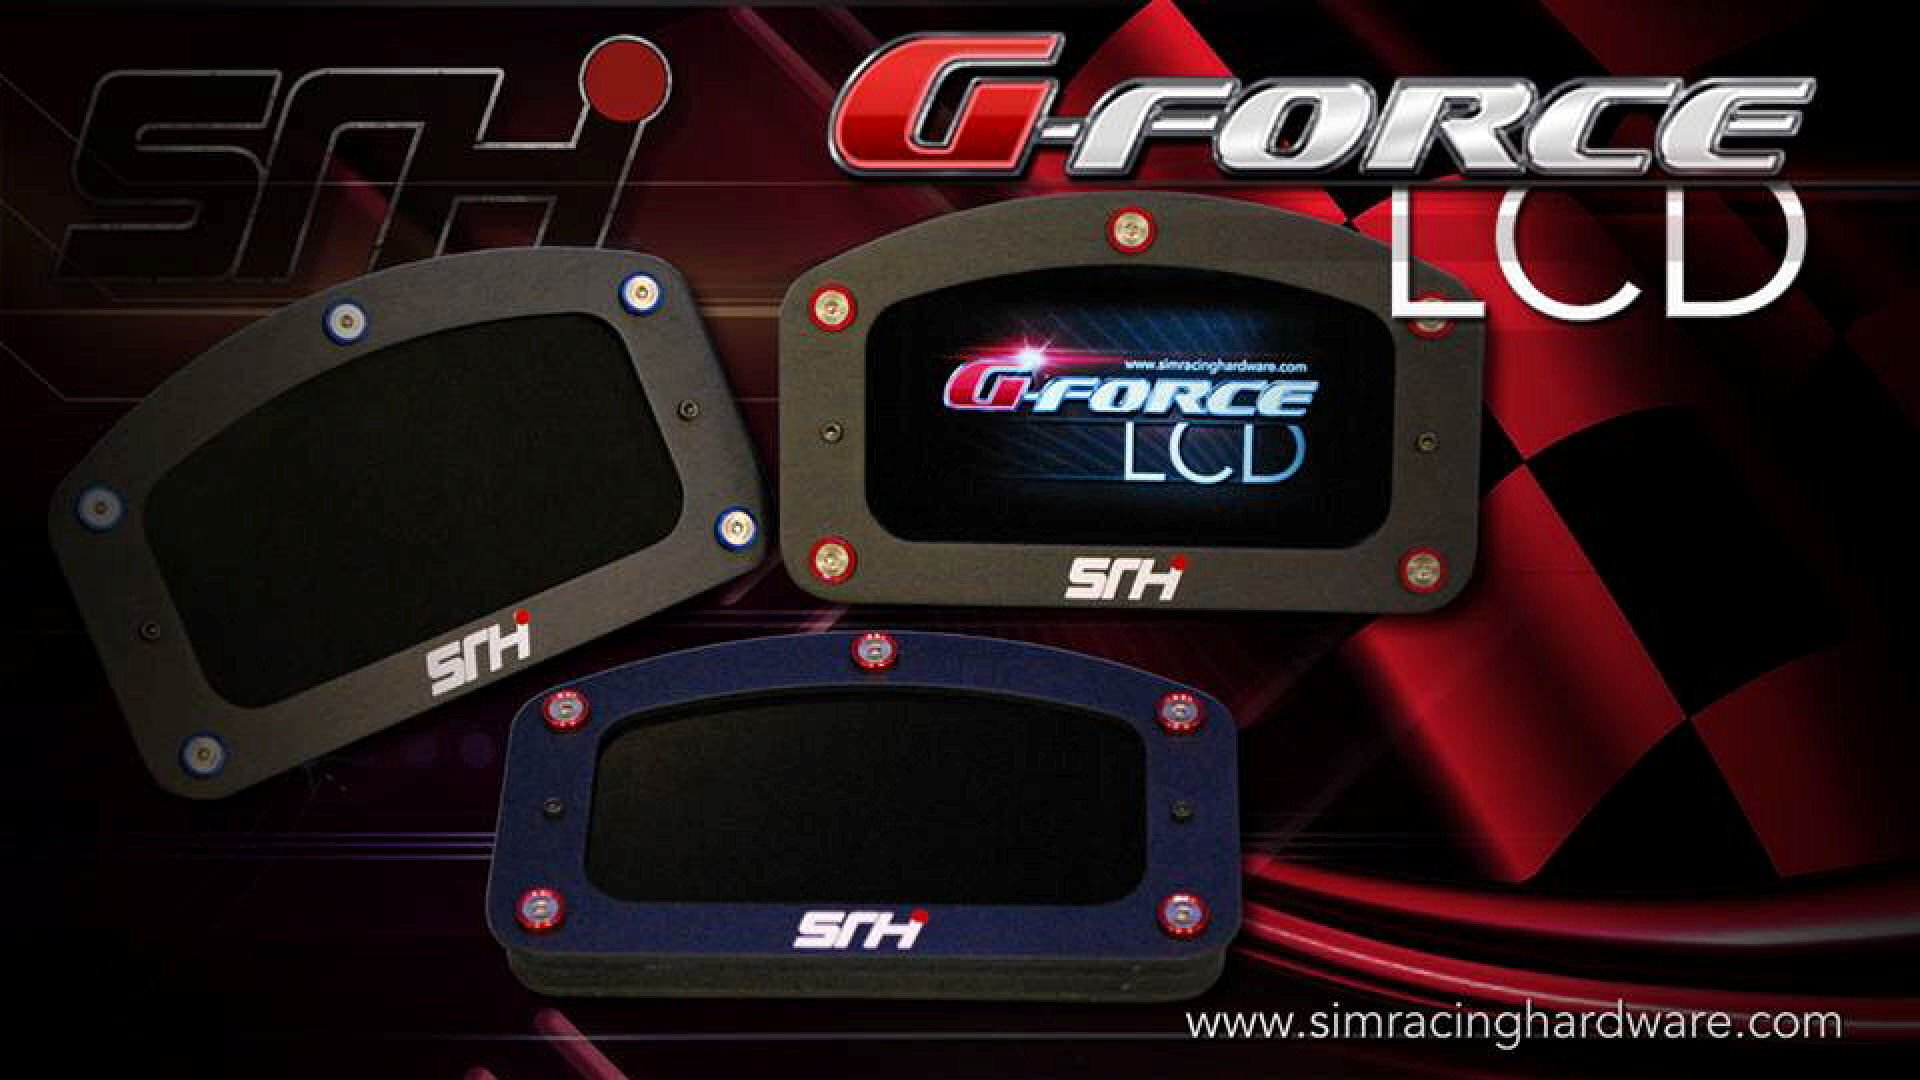 Sim Racing Hardware Release the G-Force LCD